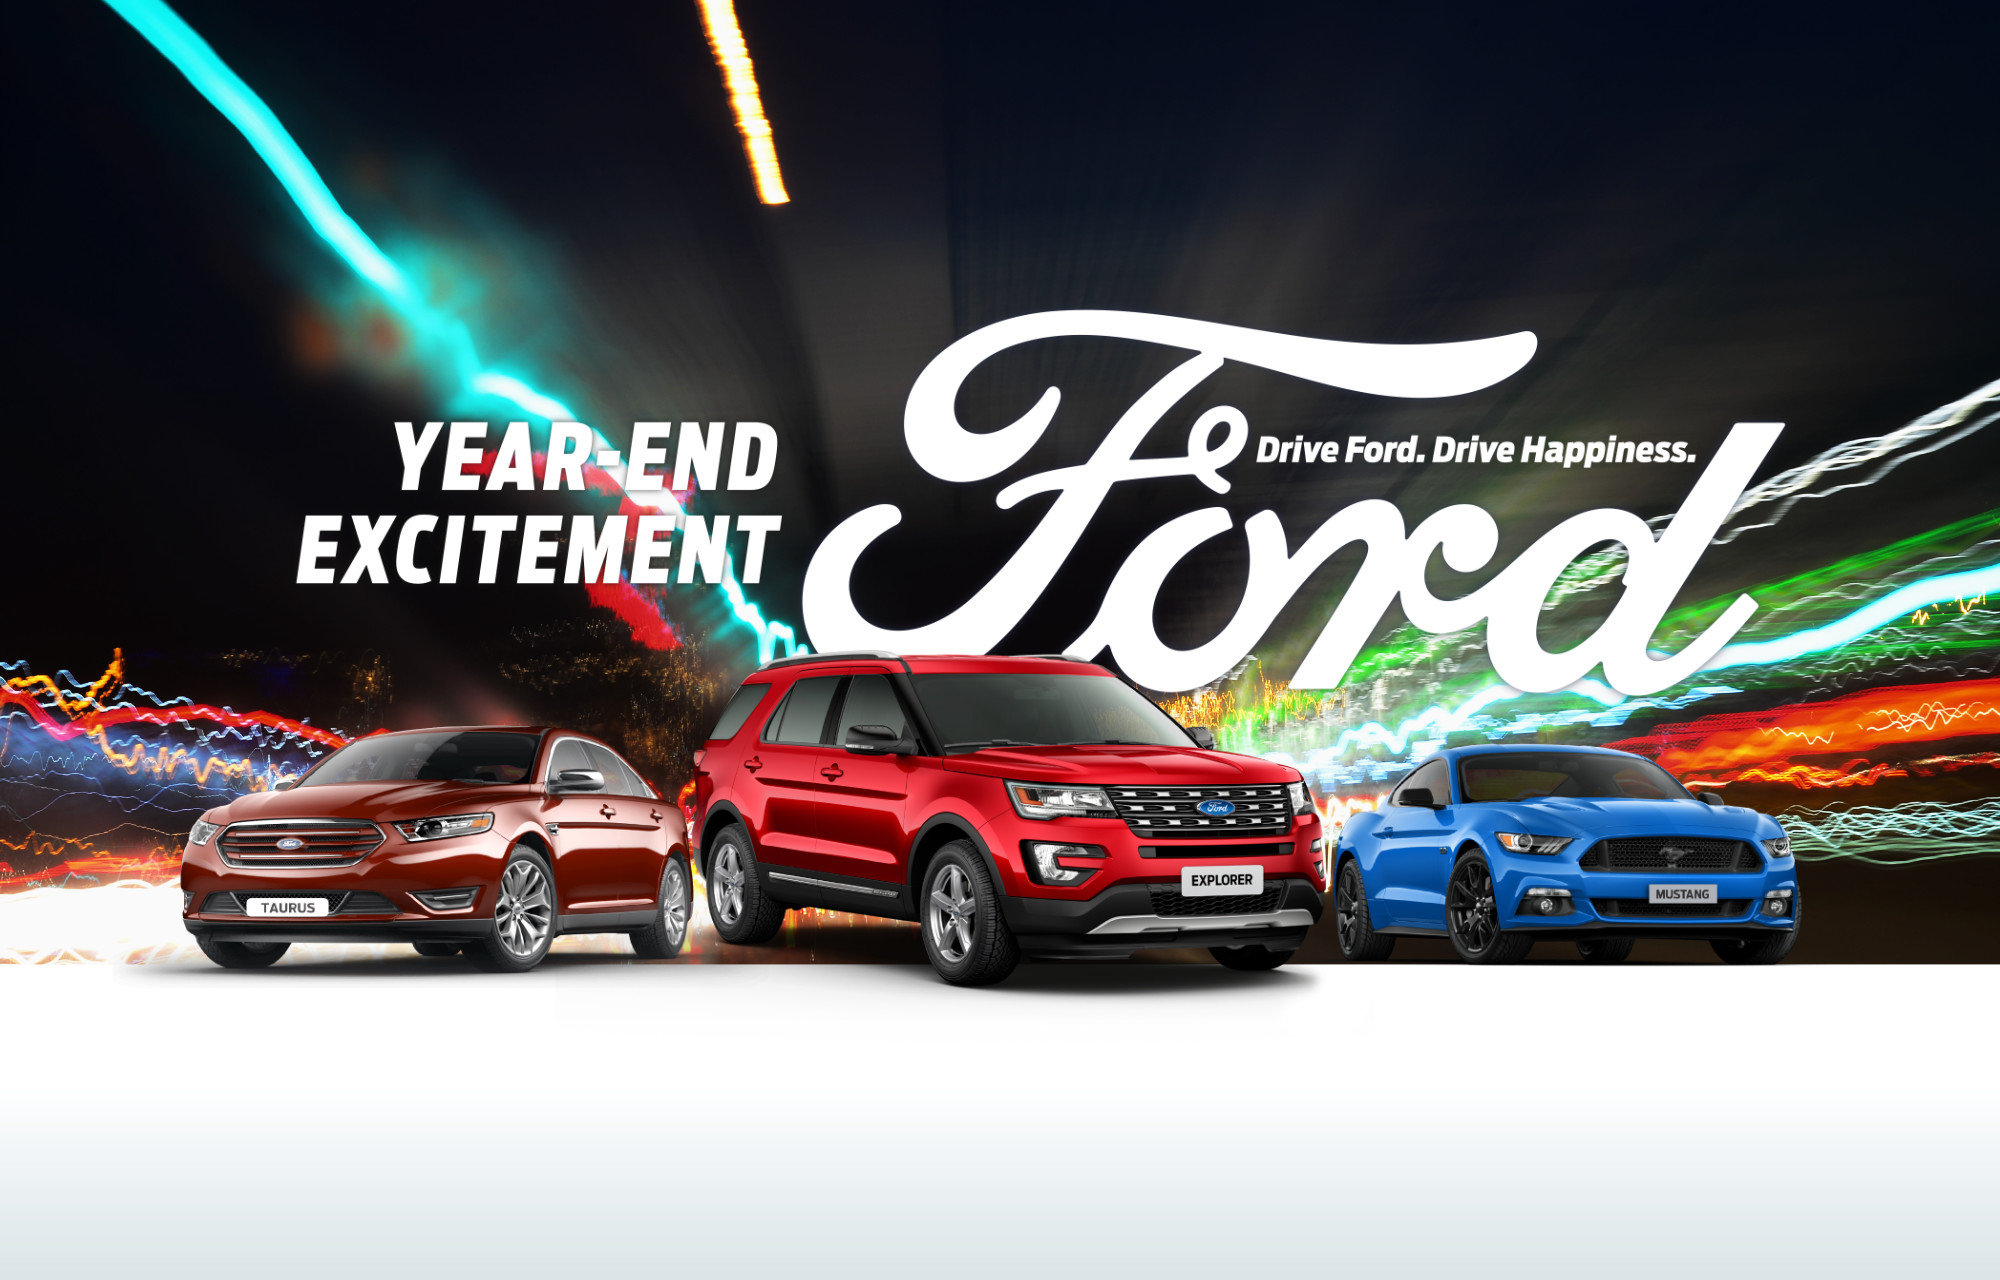 Make this year end exciting with ford offers